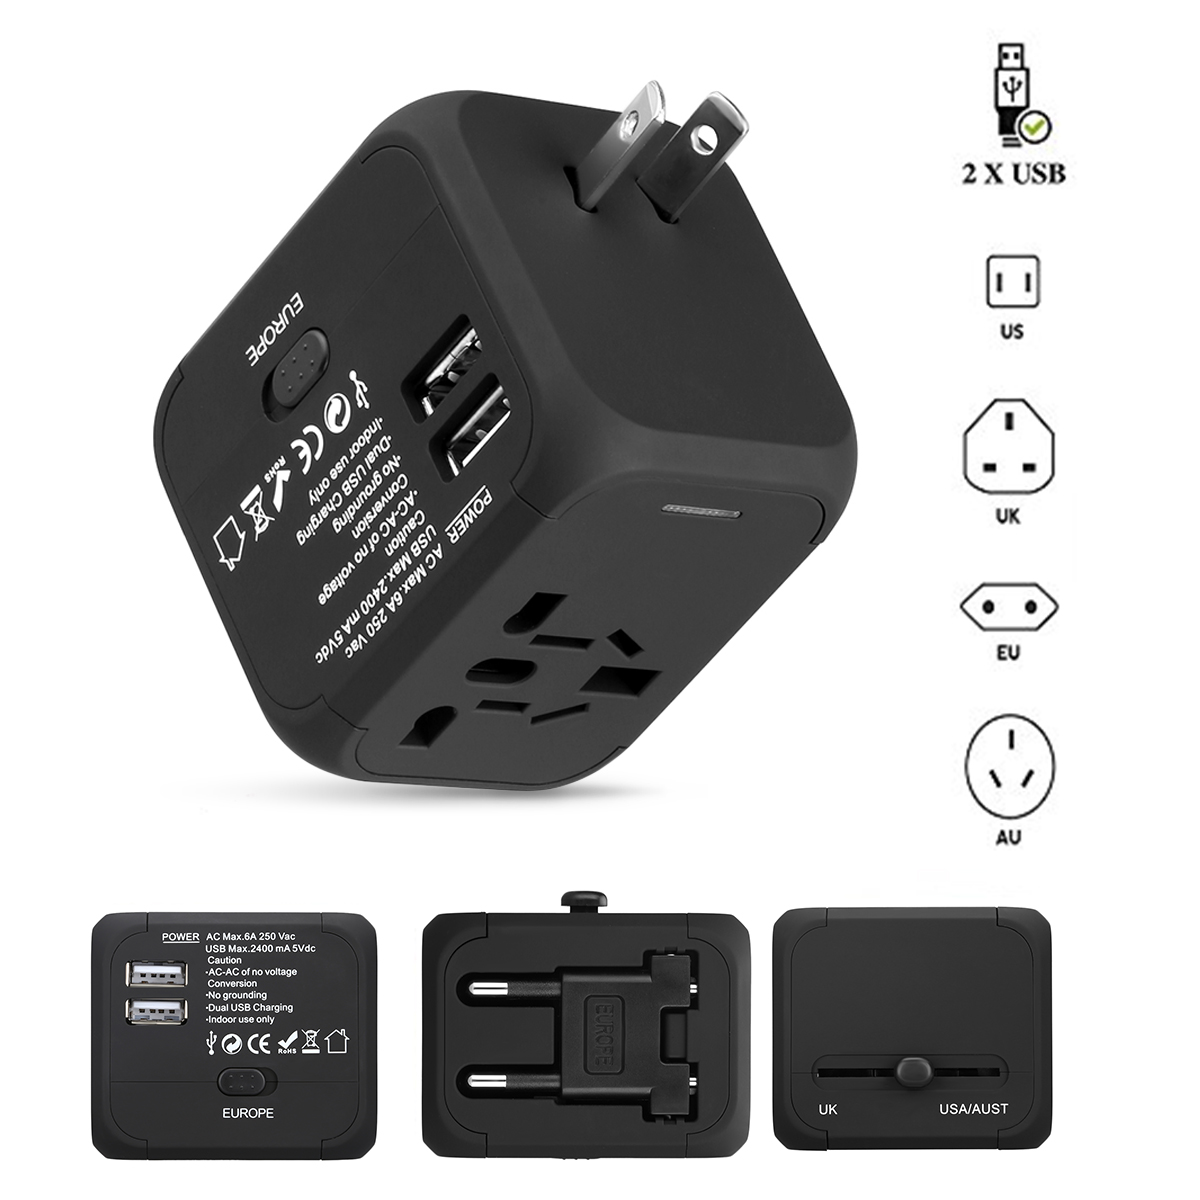 FLOUREON International Travel Power Adapter with 2.4A Dual USB charr and Universal AC Wall Outlet Plugs All-in-One for US, UK, AU, Europe & Asia